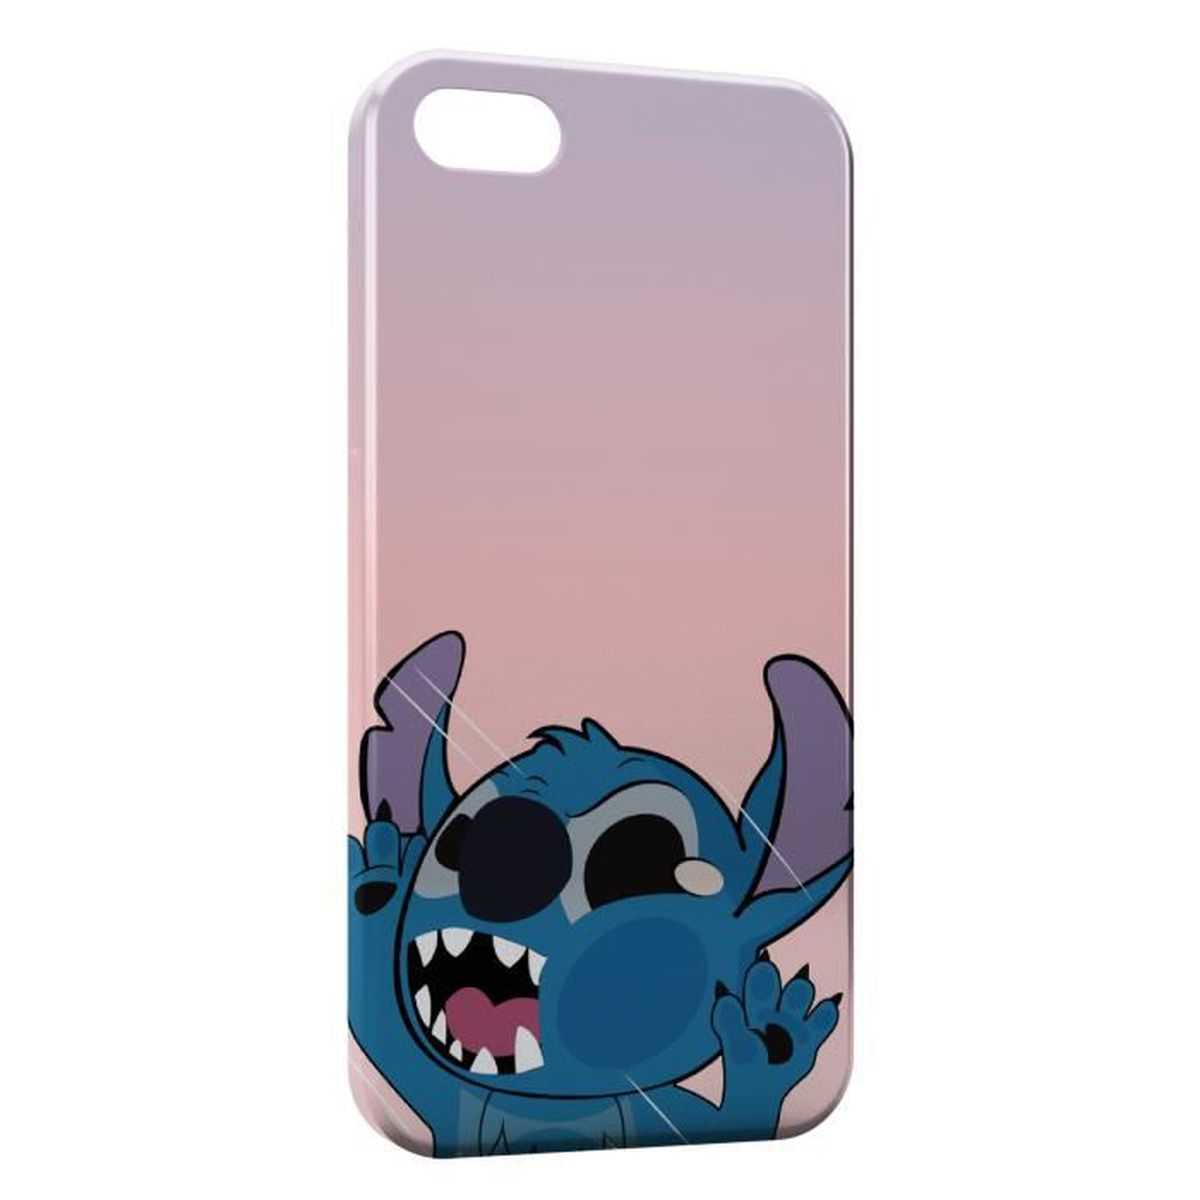 coque stitch iphone 4